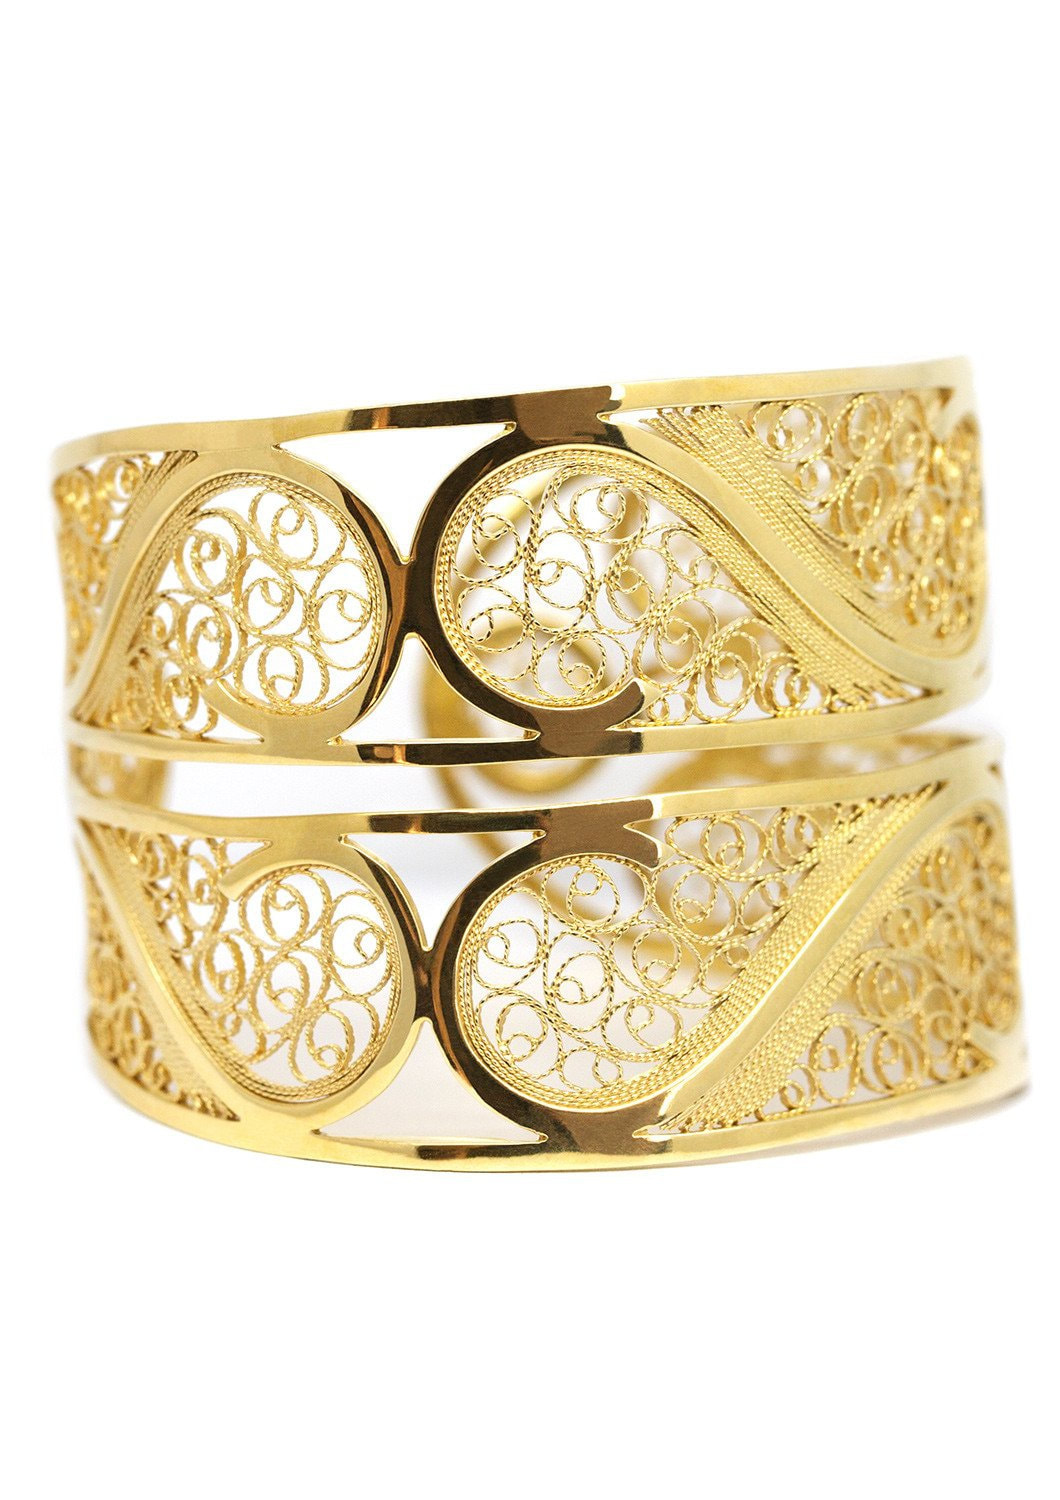 Arabel Lebrusan Filigree Links Bangle